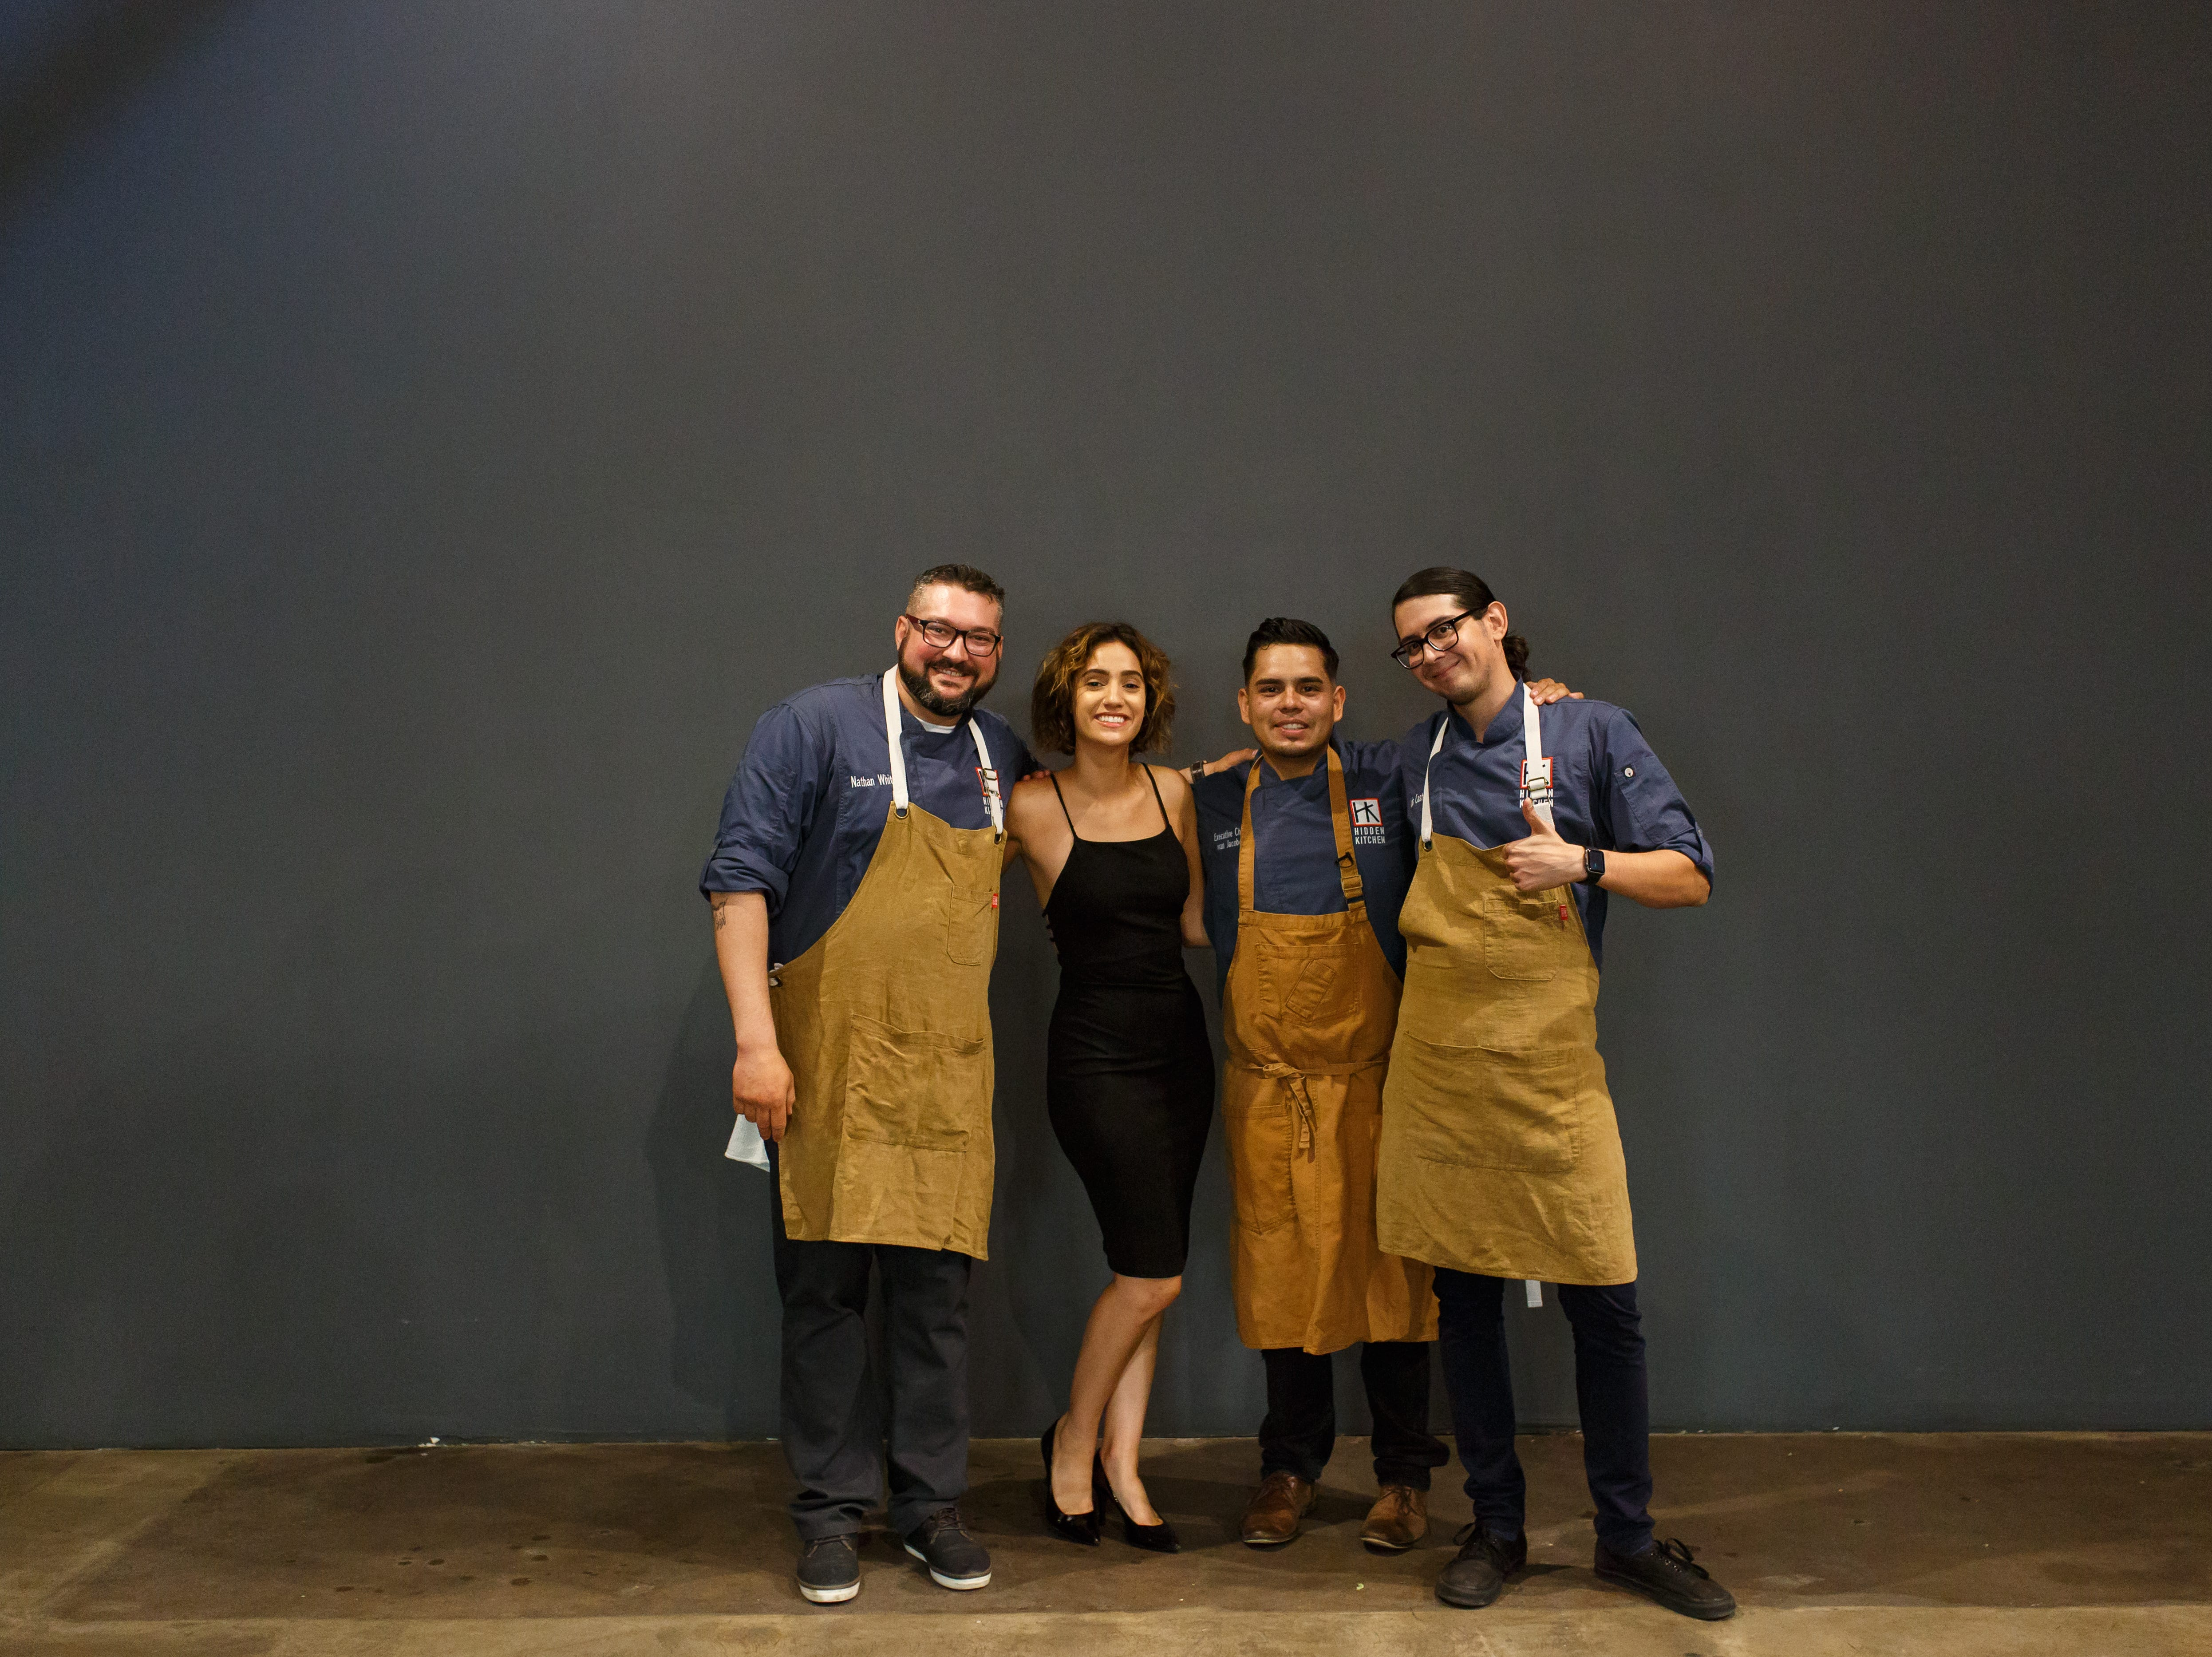 The team behind Hidden Kitchen, a successful catering company headed by chef Ivan Jacobo, who will open a brick-and-mortar restaurant in February 2019.